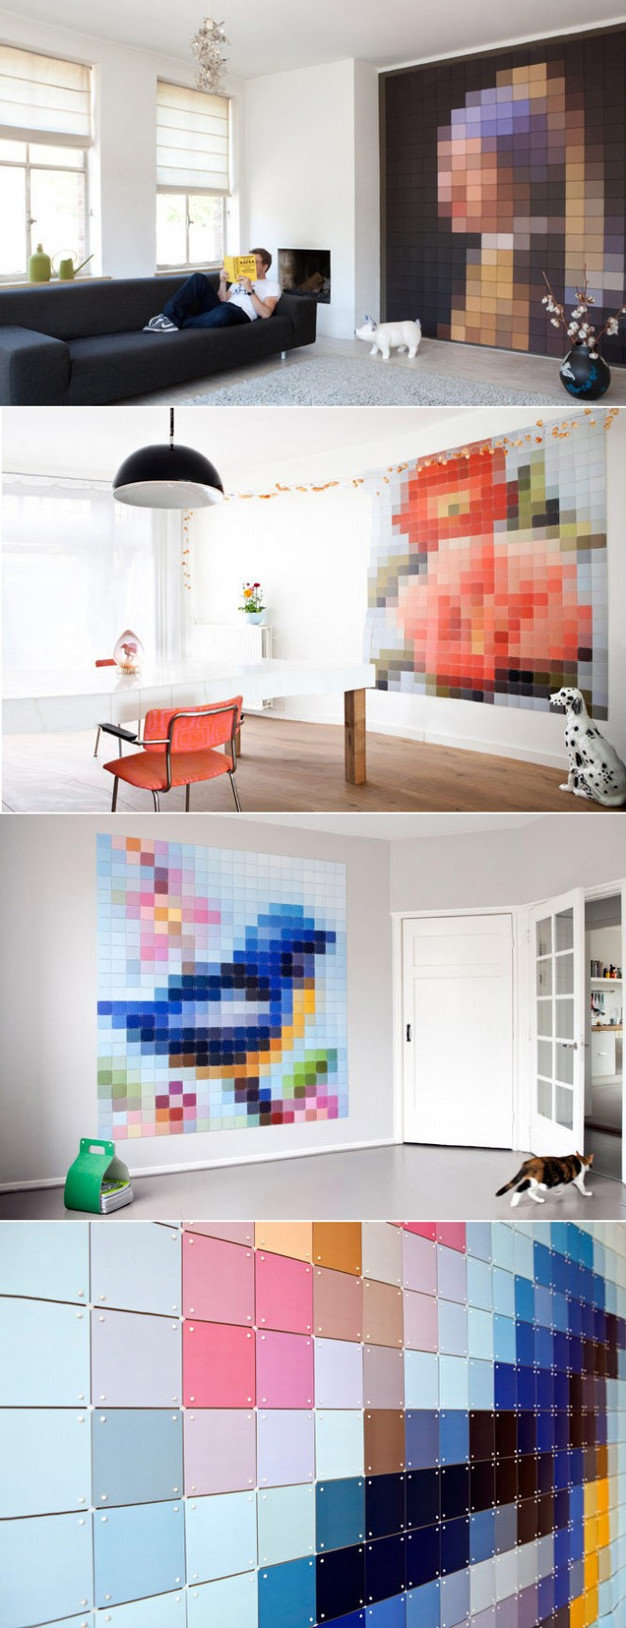 a pixelated portrait from a classic painting is splashed across traditional furniture designs in a modern meets old world mashup by italian design firm - Pixelated Interior Design